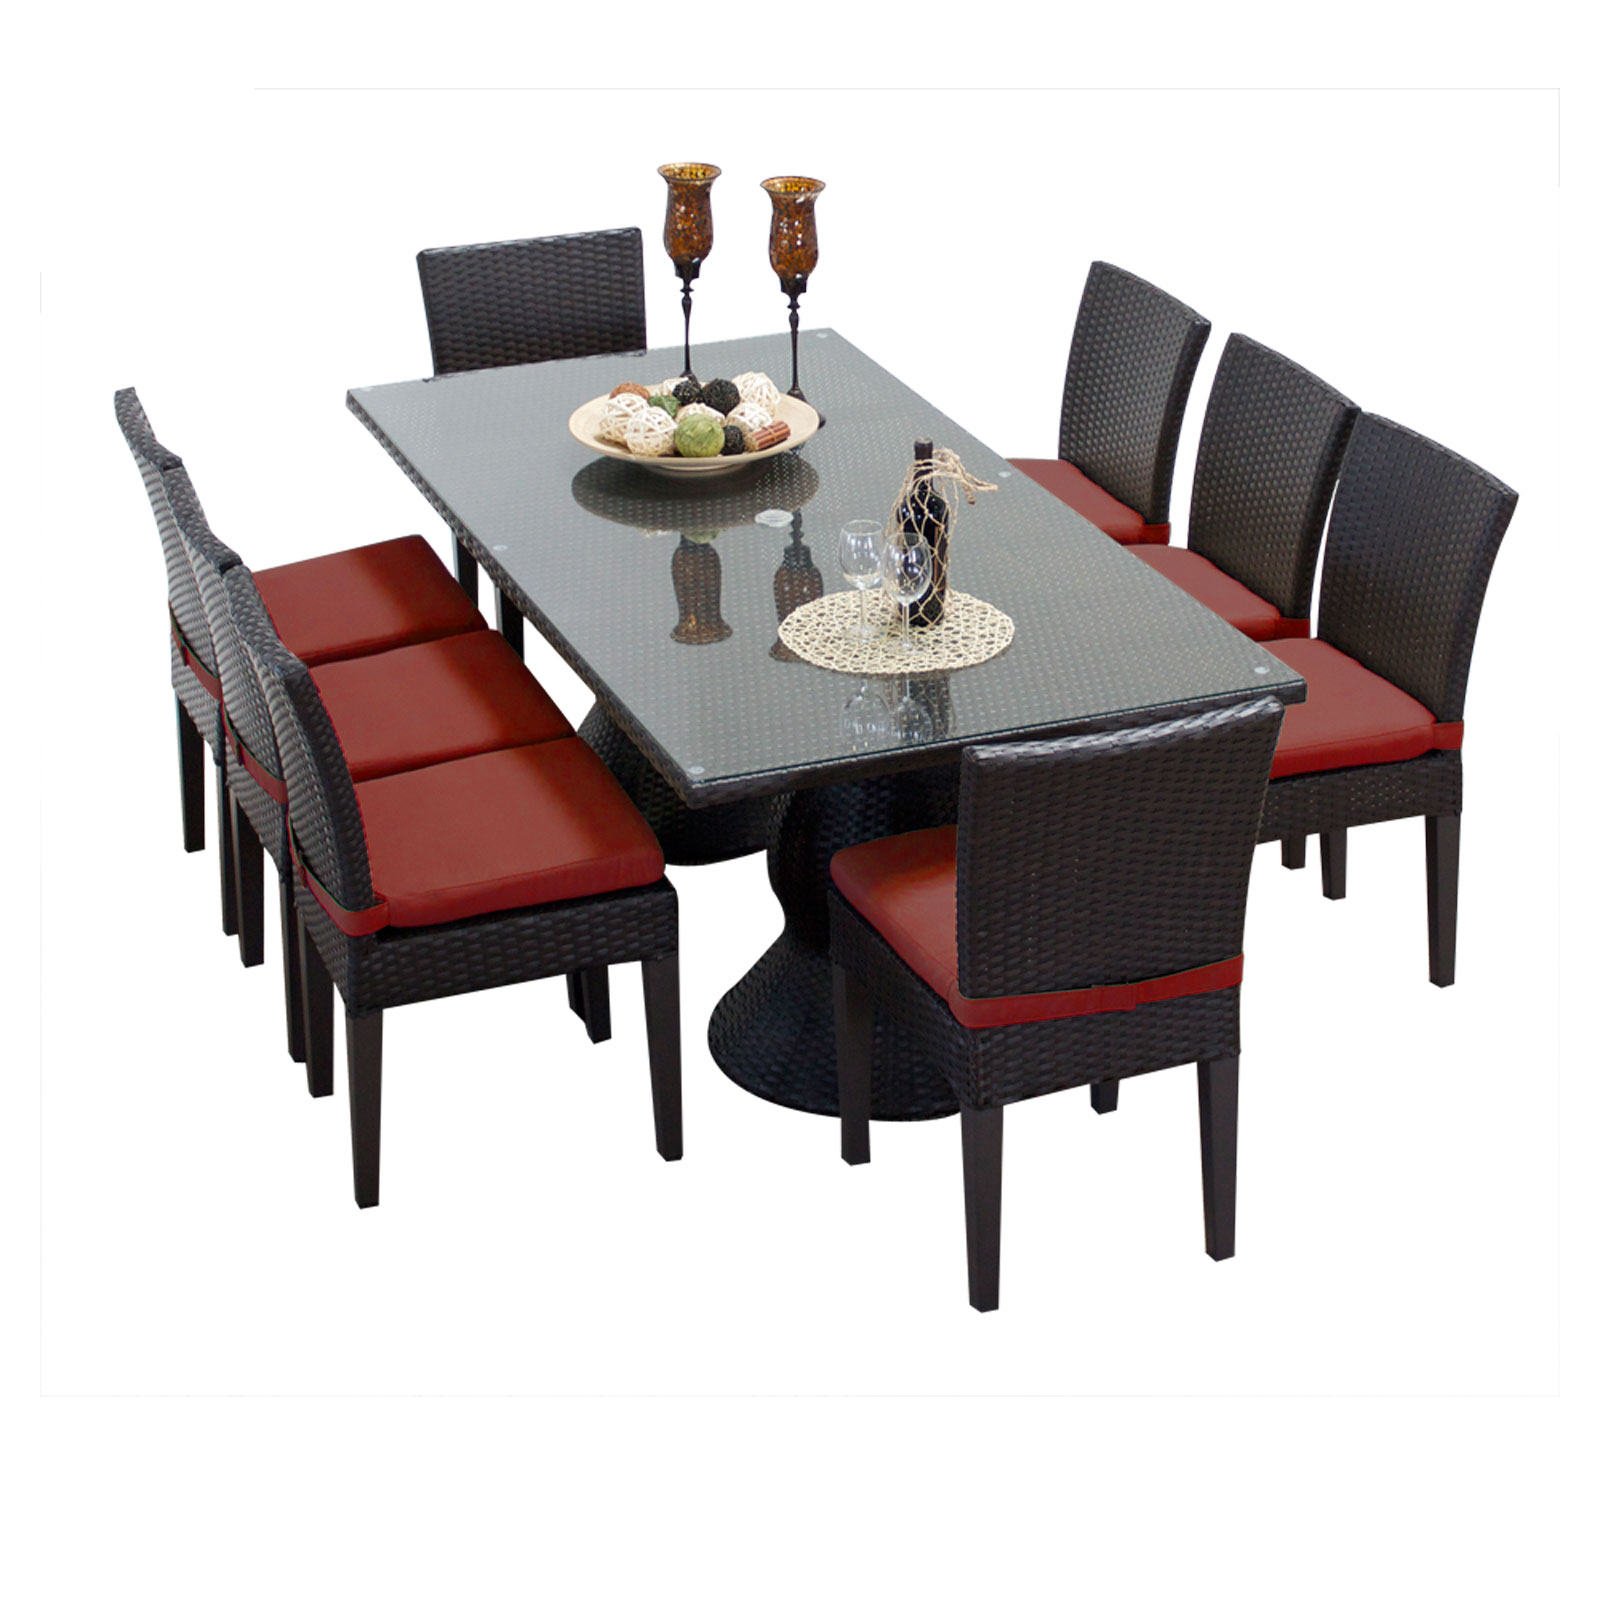 Saturn Rectangular Outdoor Patio Dining Table With 8 Chairs by TK Classics